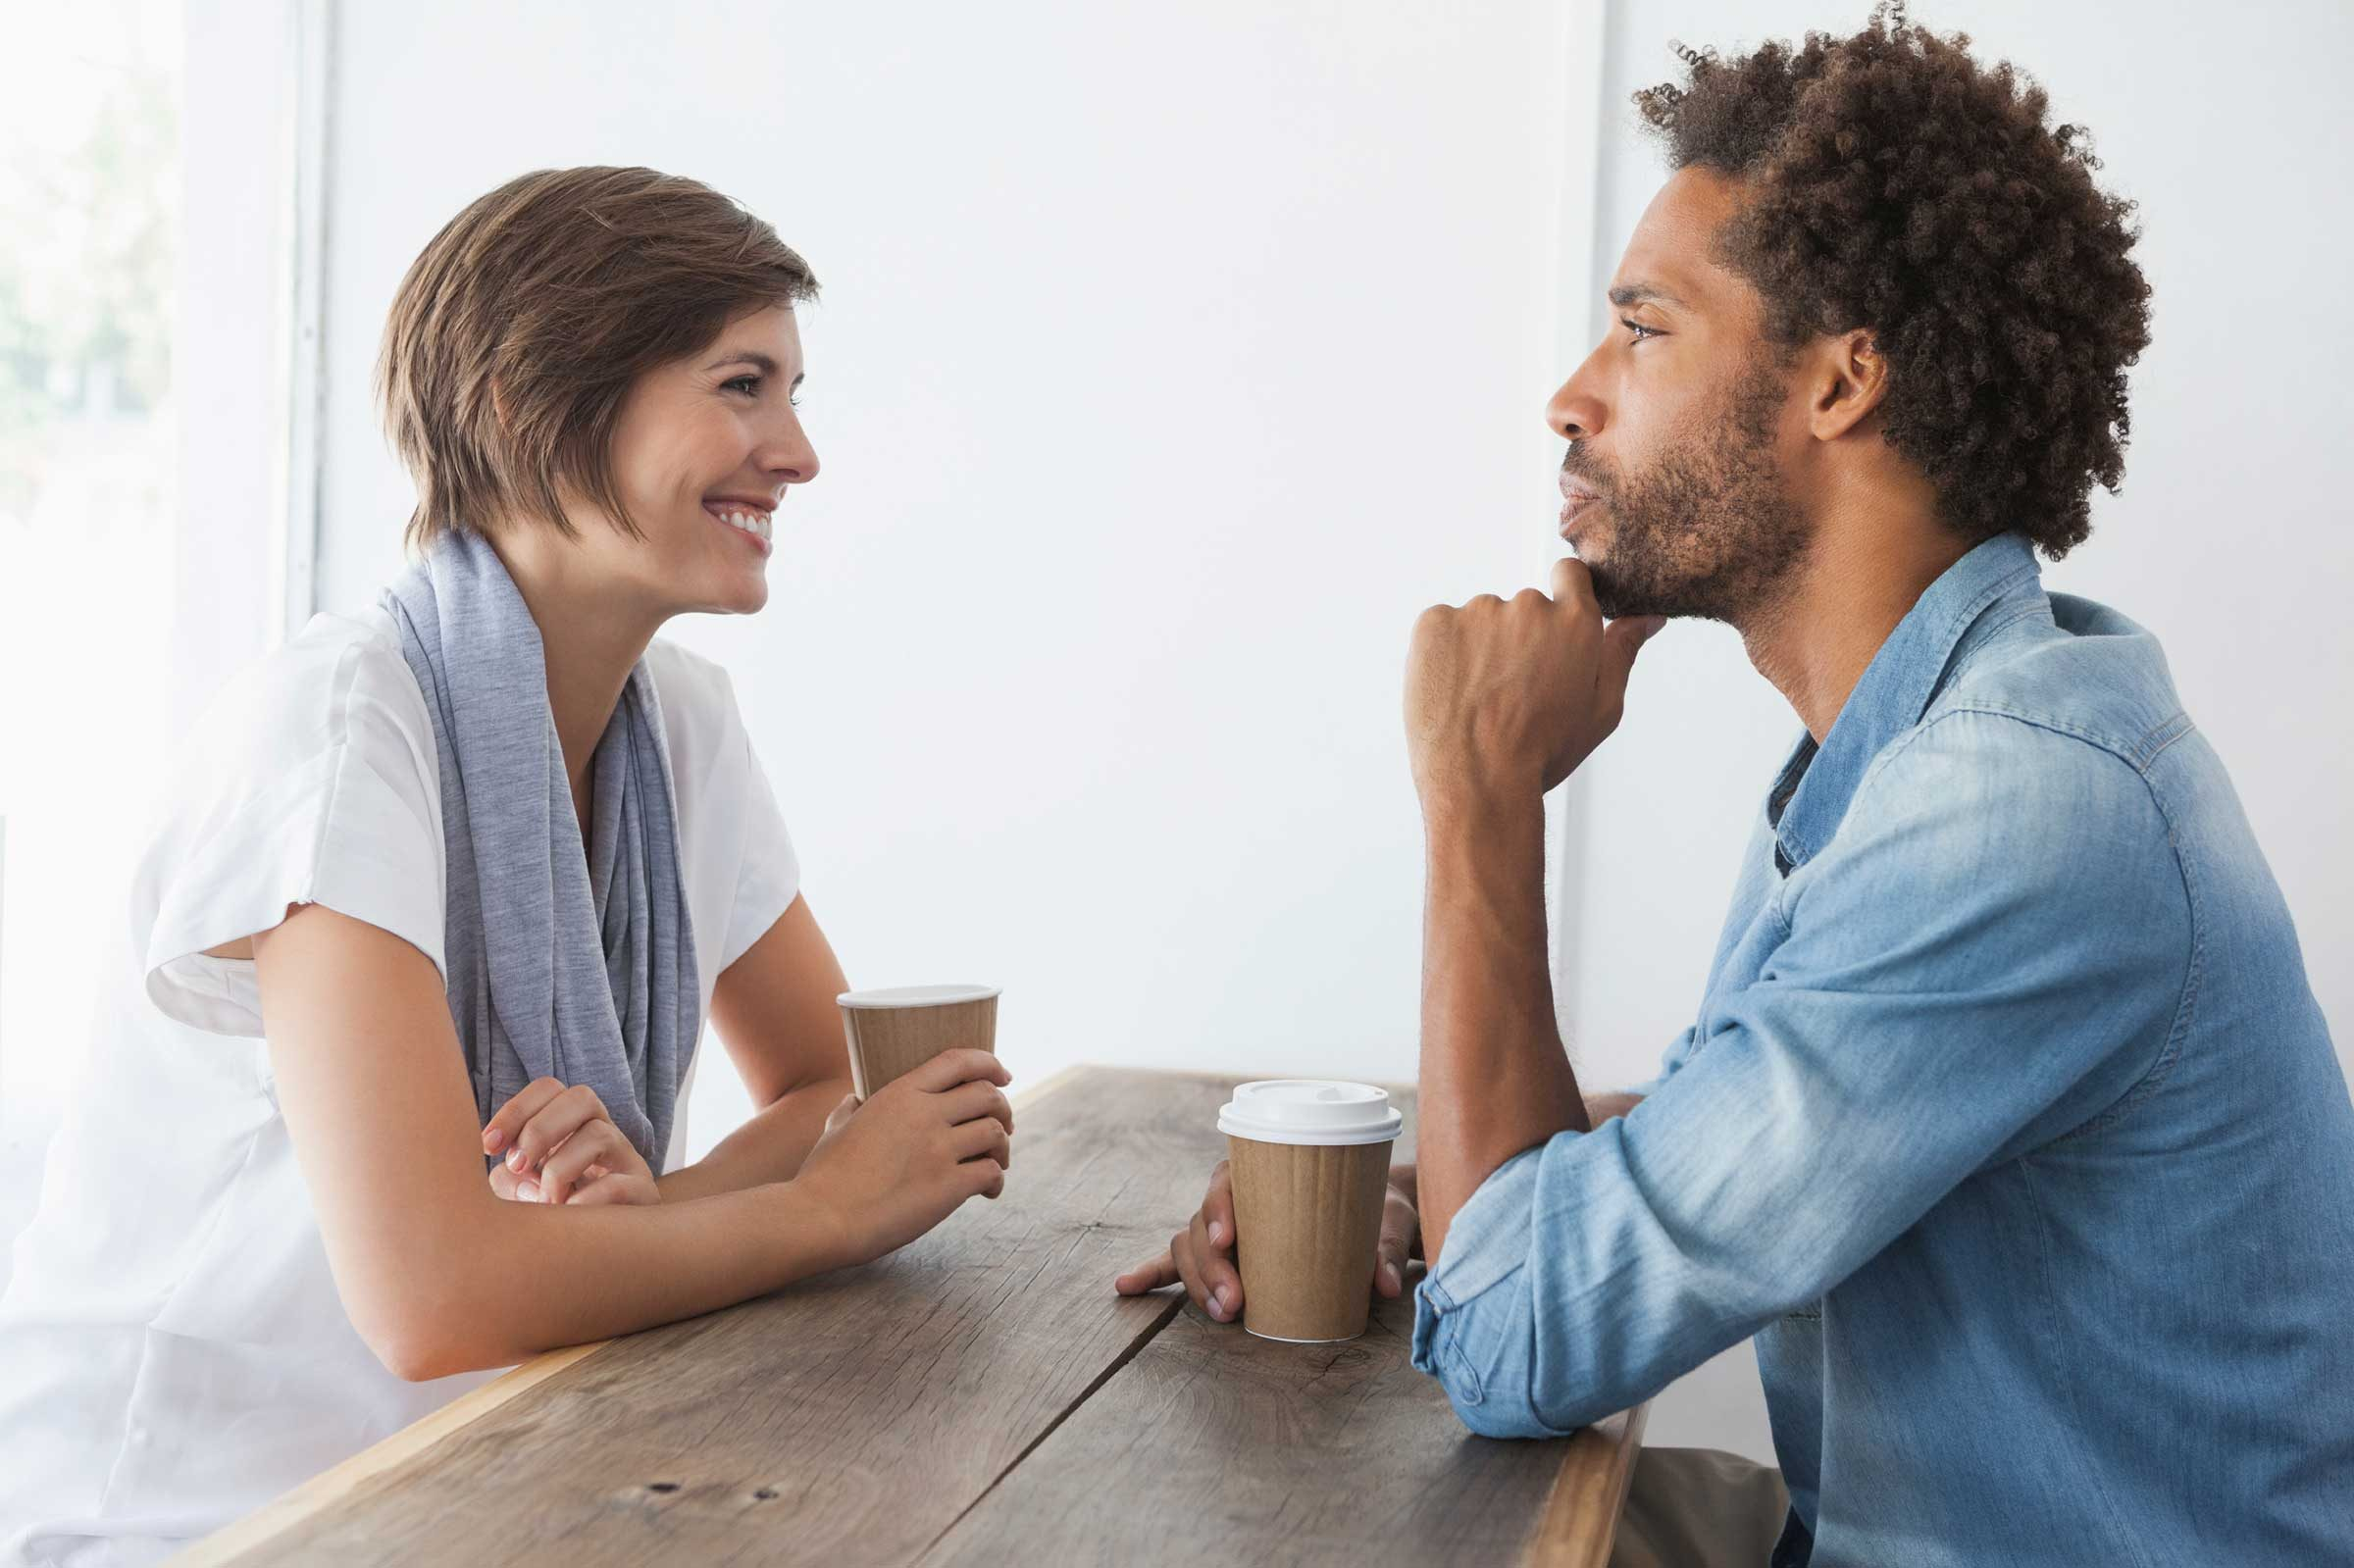 How to spot liars on dating sites